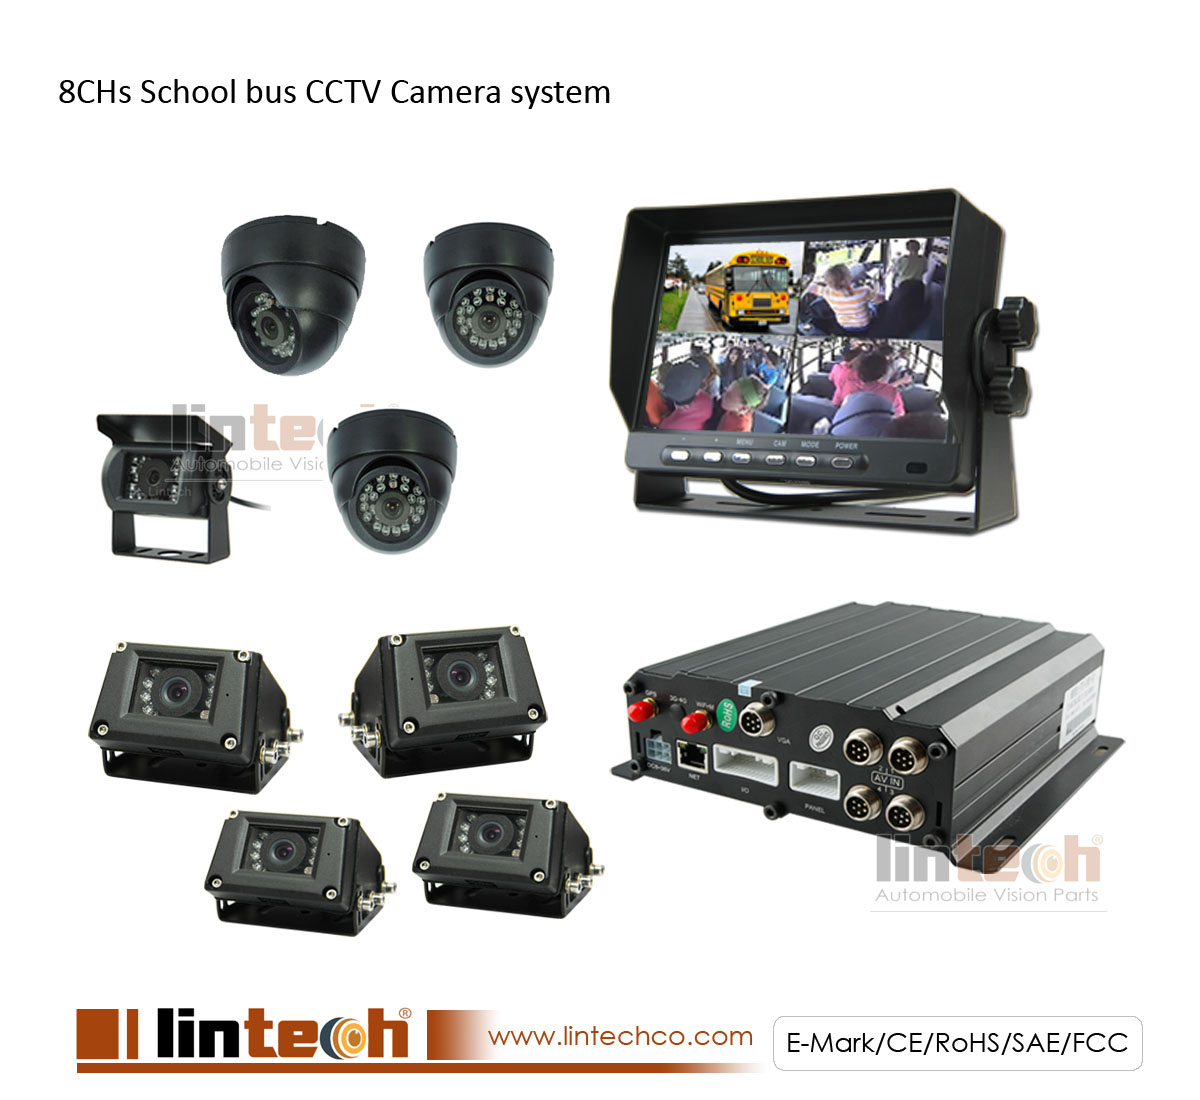 8CH MDVR CCTV Security Camera System for School Bus with Free Client Software